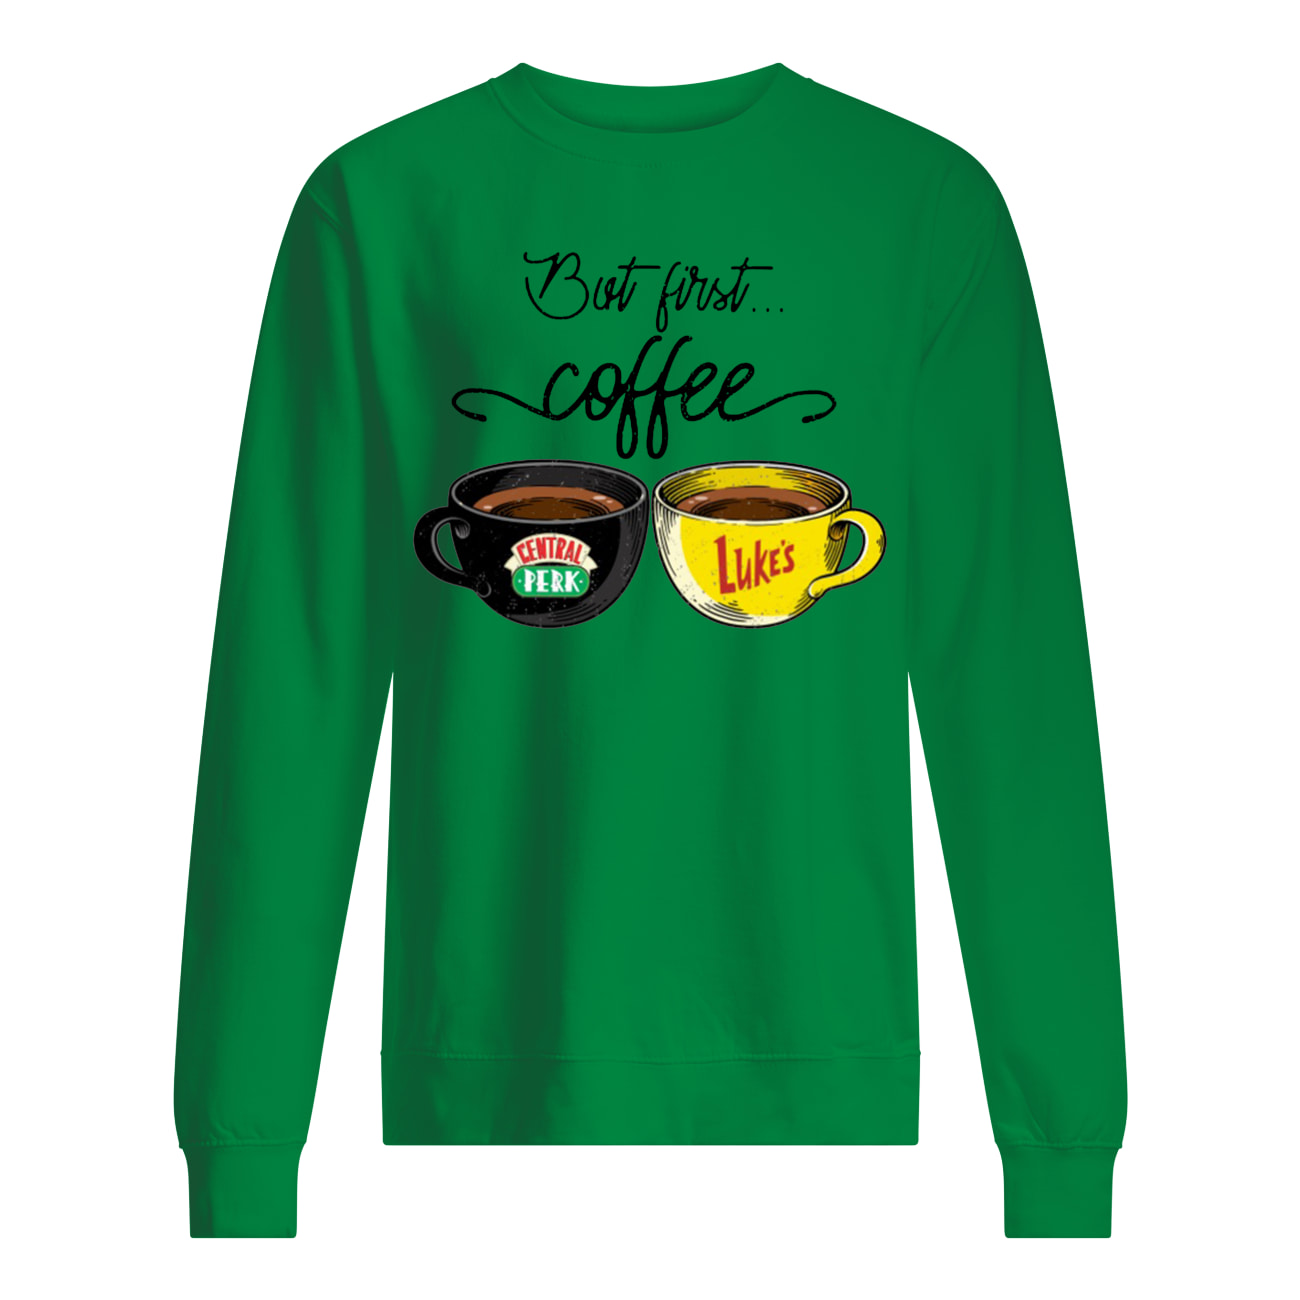 But first coffee central perk and luke's sweatshirt